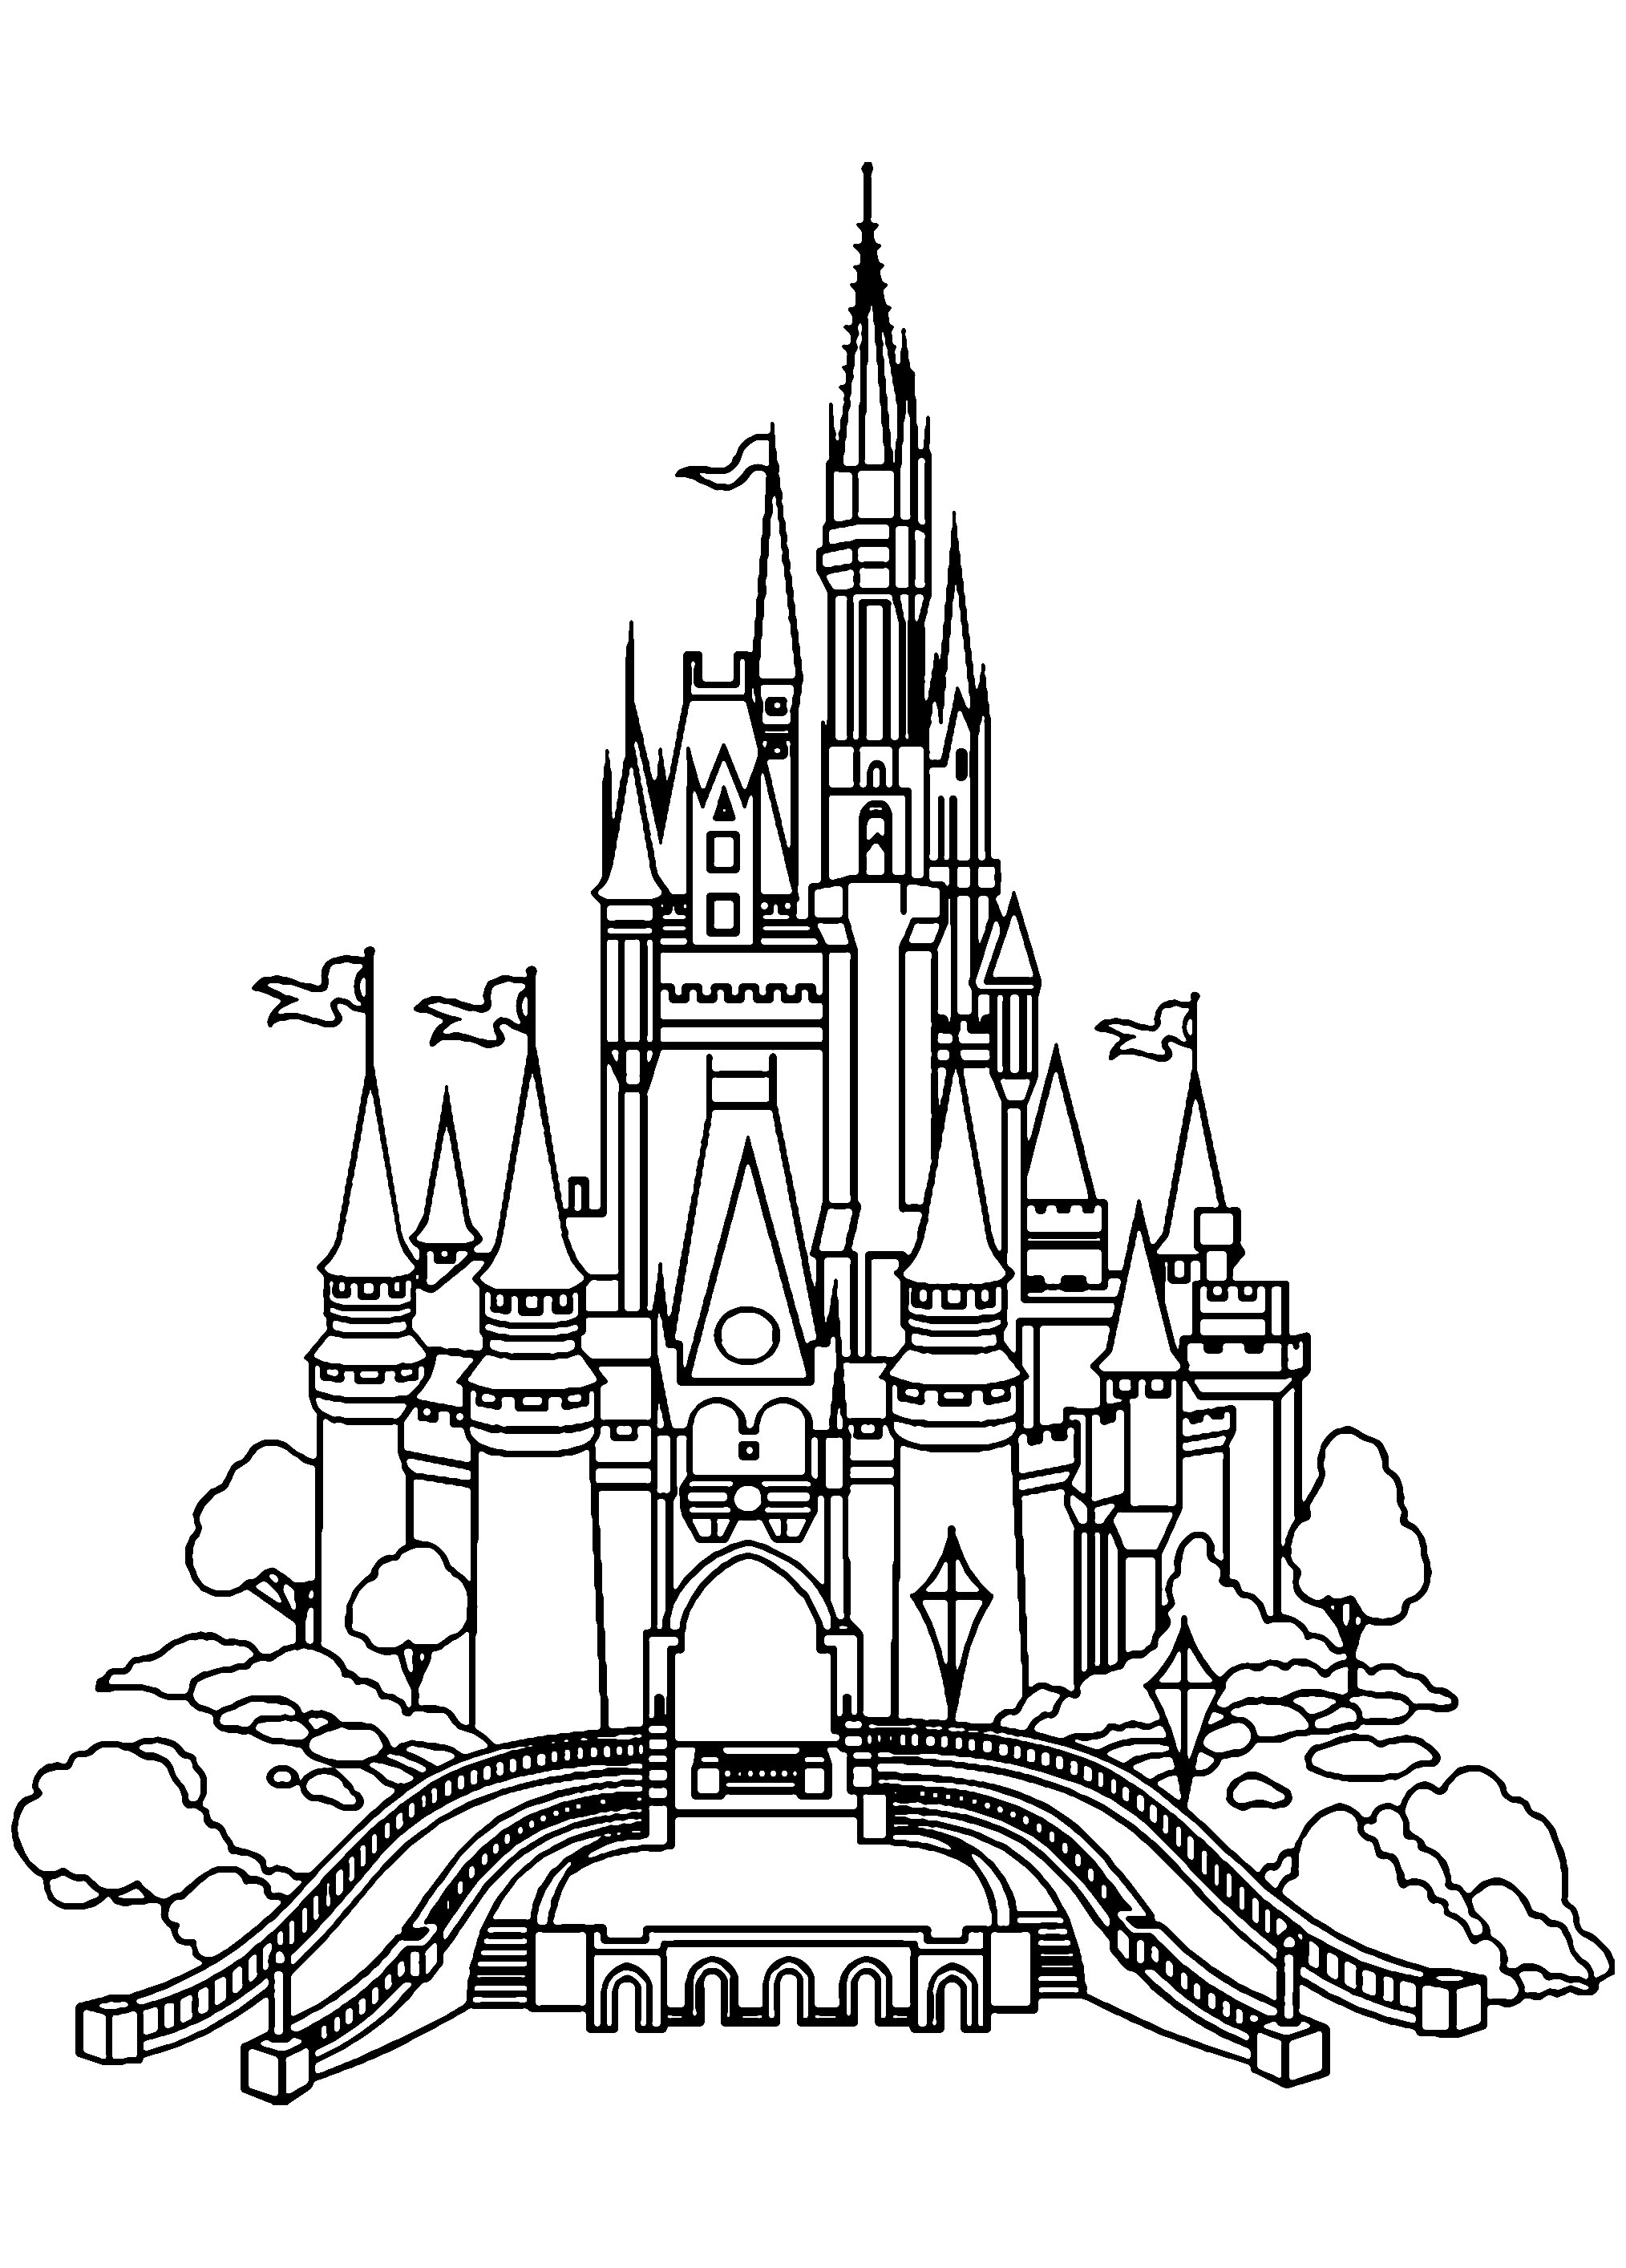 Coloring Page Of The Disneyland Castle In Vectorial Style